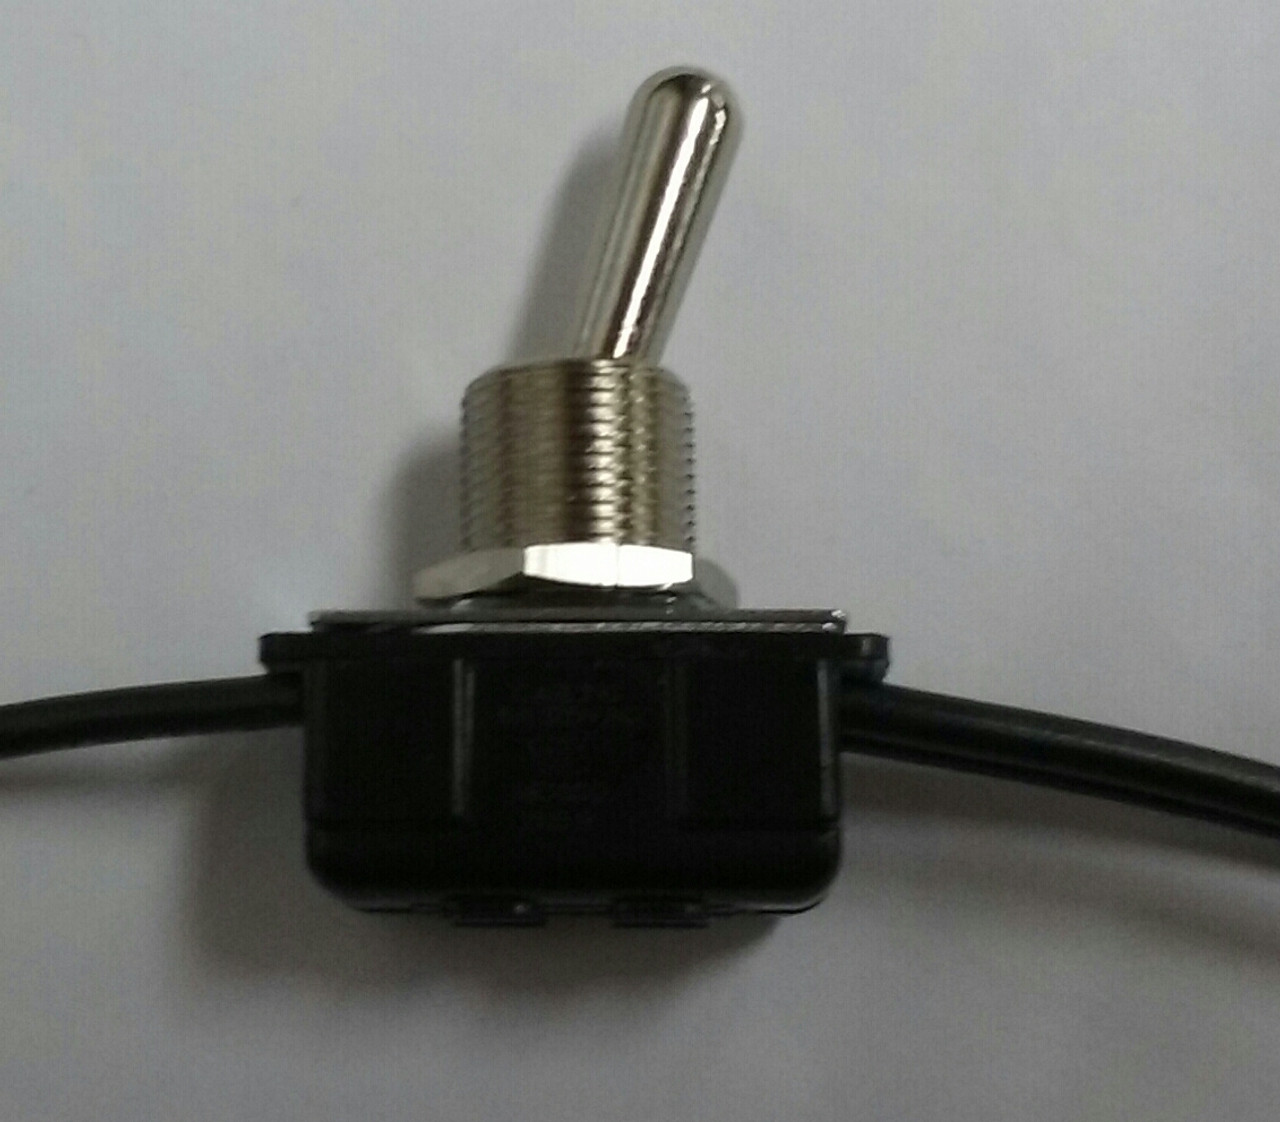 Carling 2bb65 73 Toggle Switch Offon Switches Electrical Products Wire Leads On 6 Amps